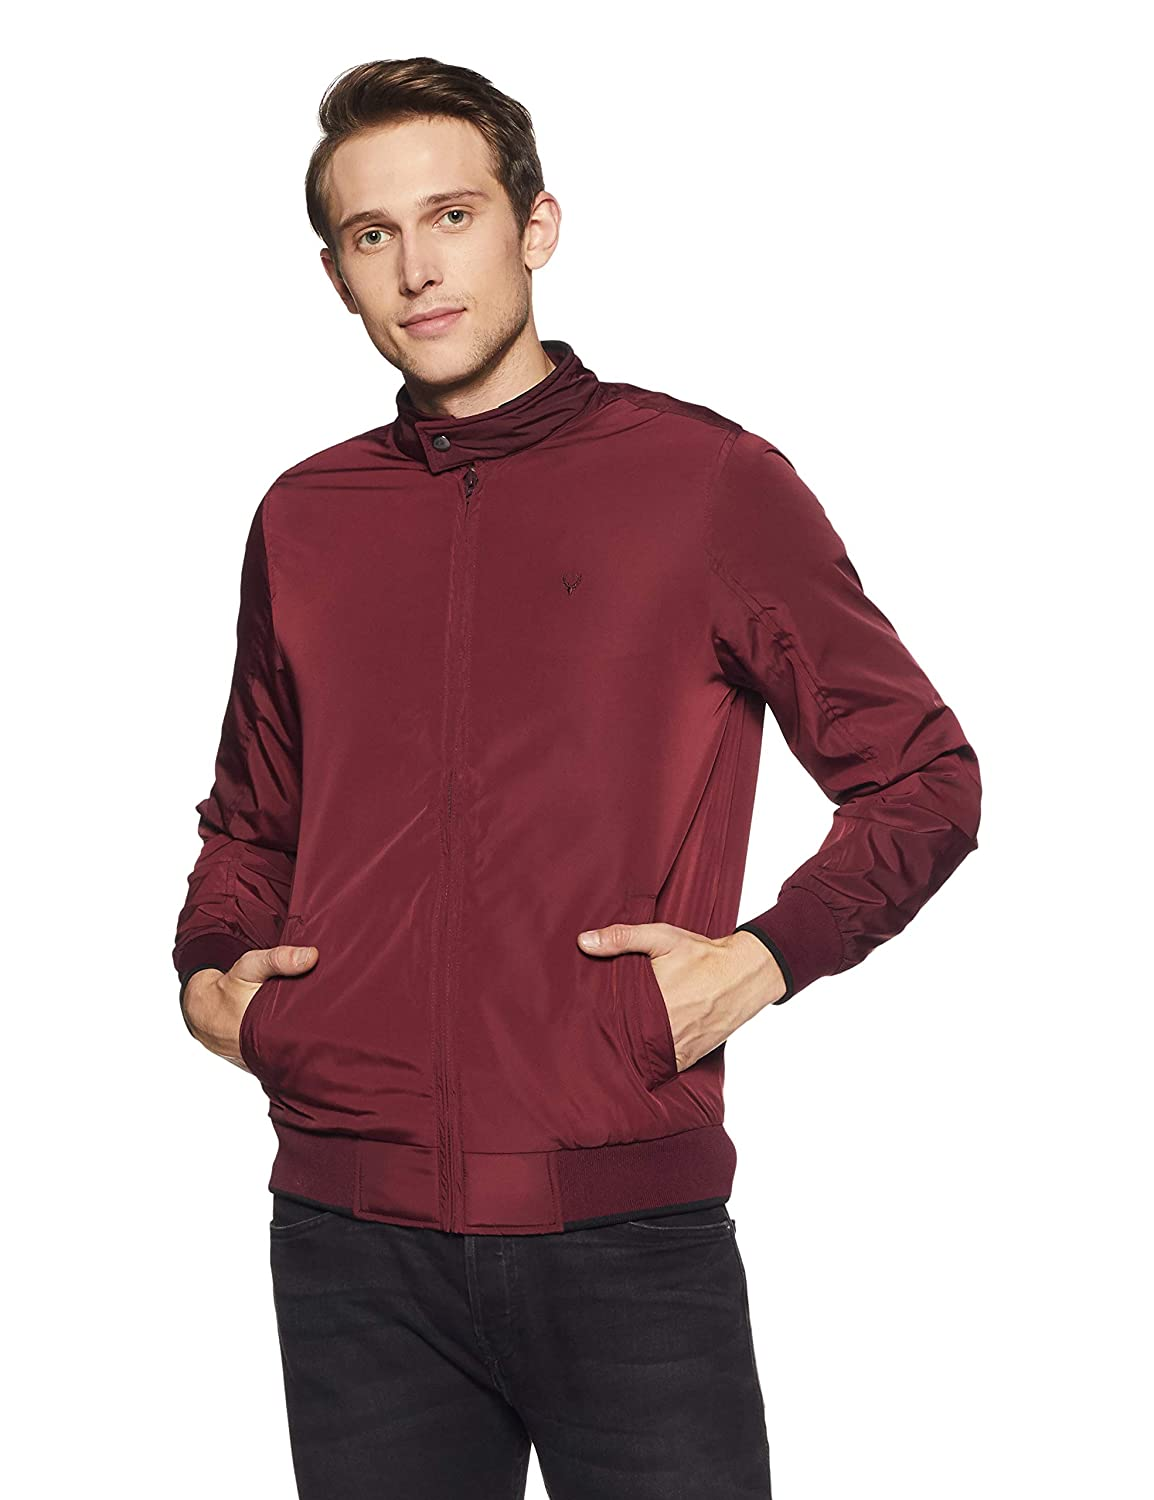 Allen solly men Jacket Rs740